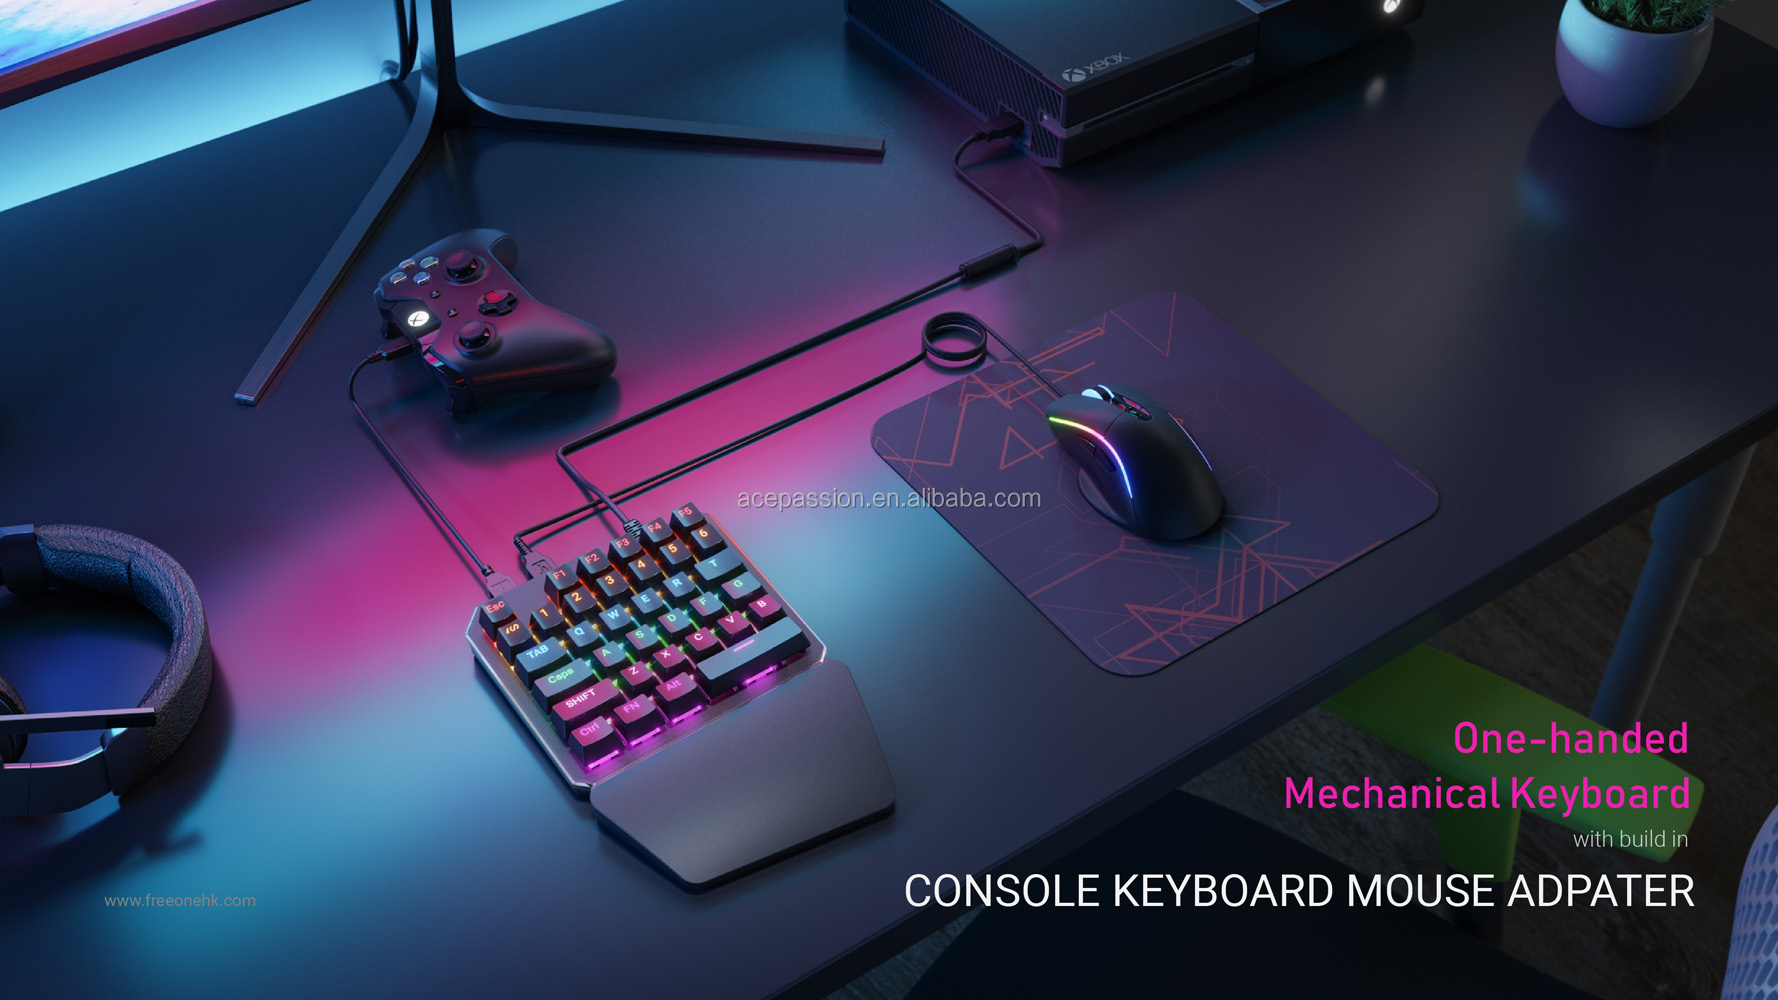 Mechanical Keyboard with built-in Keyboard & Mouse Adapter